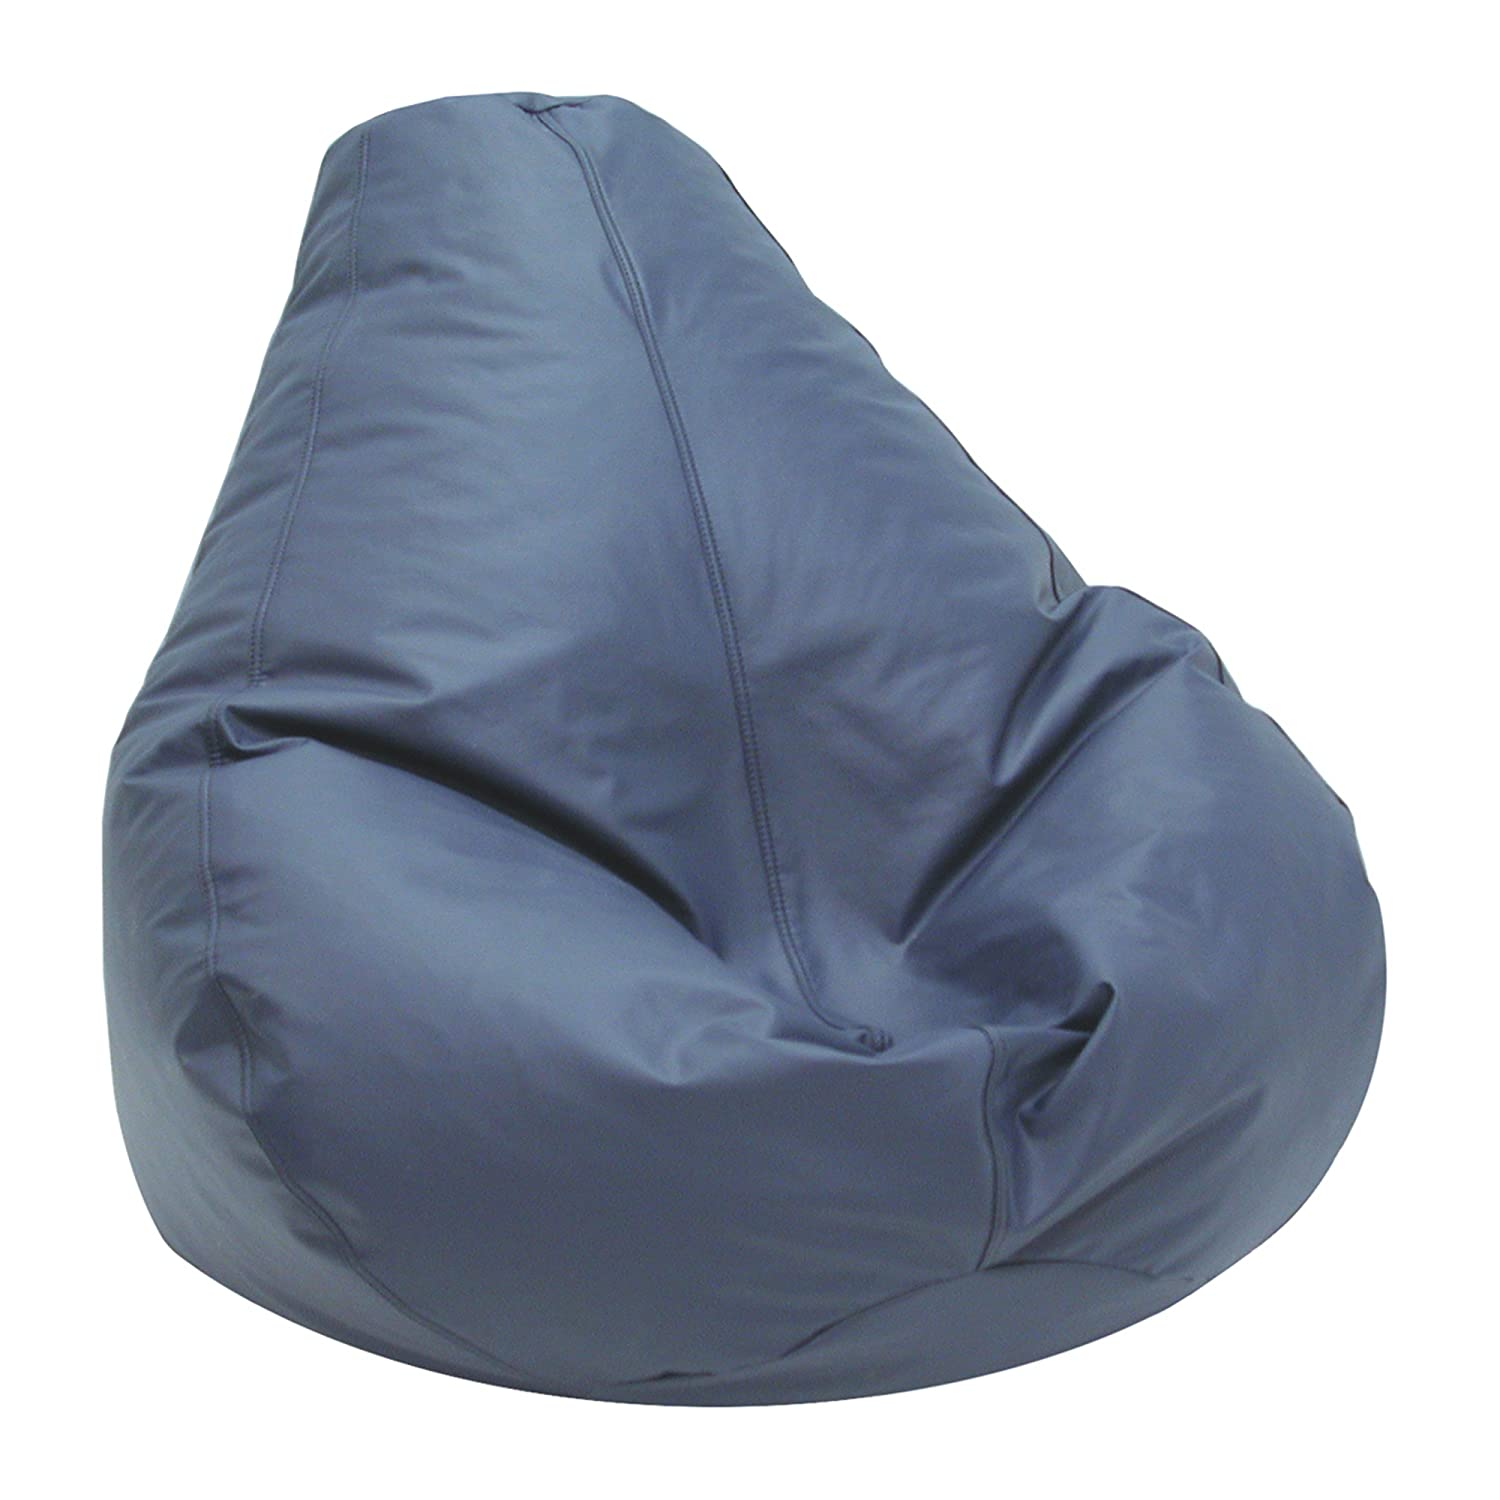 - Amazon.com: Lifestyle Bean Bag Adult, Aqua: Kitchen & Dining